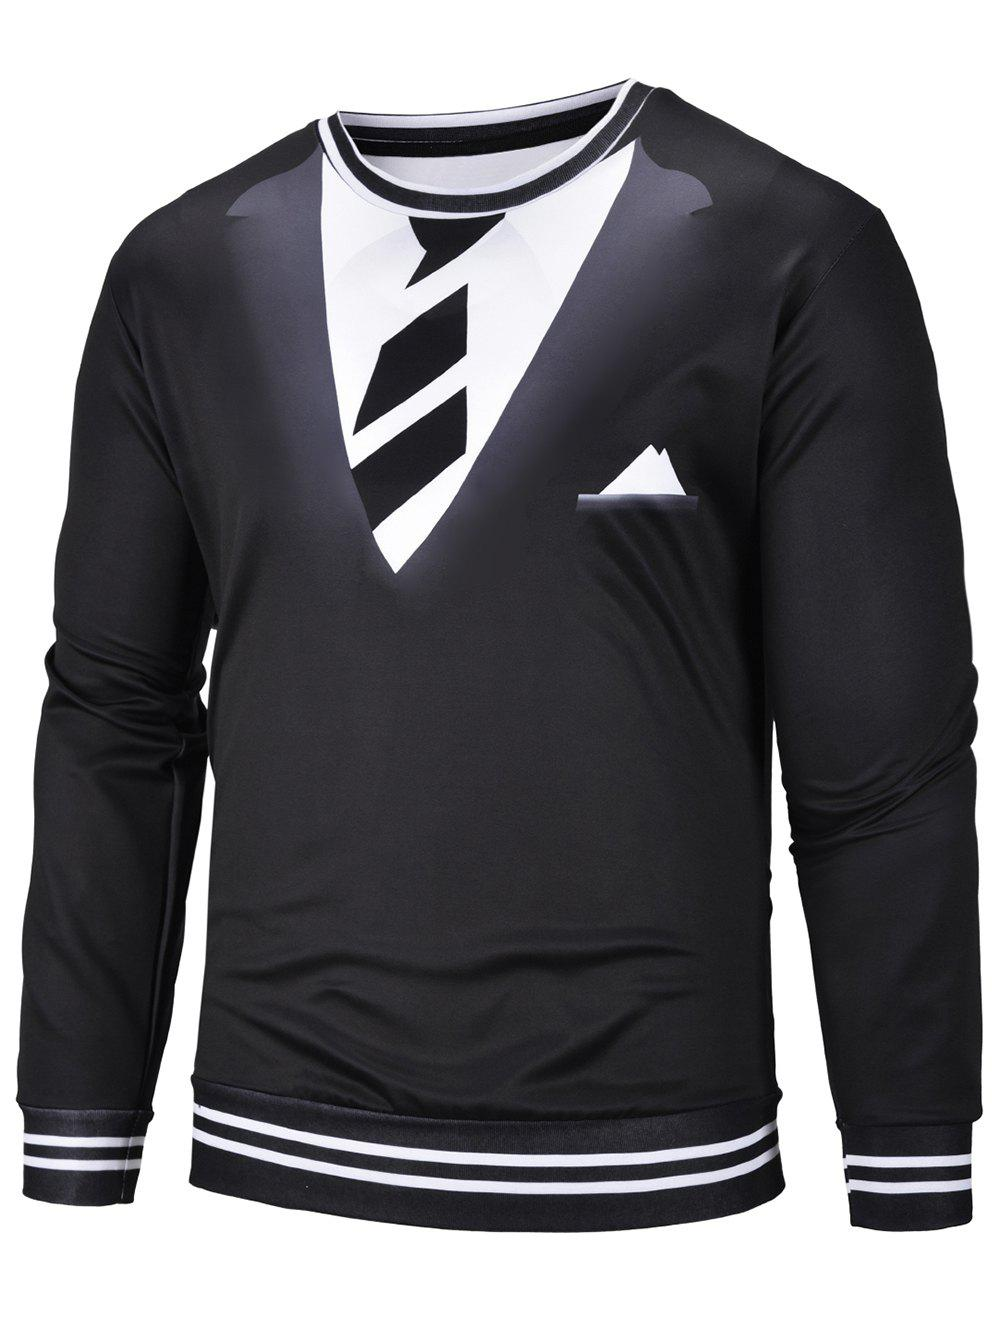 Hot 3D Tie Suit Print Long Sleeve Sweatshirt